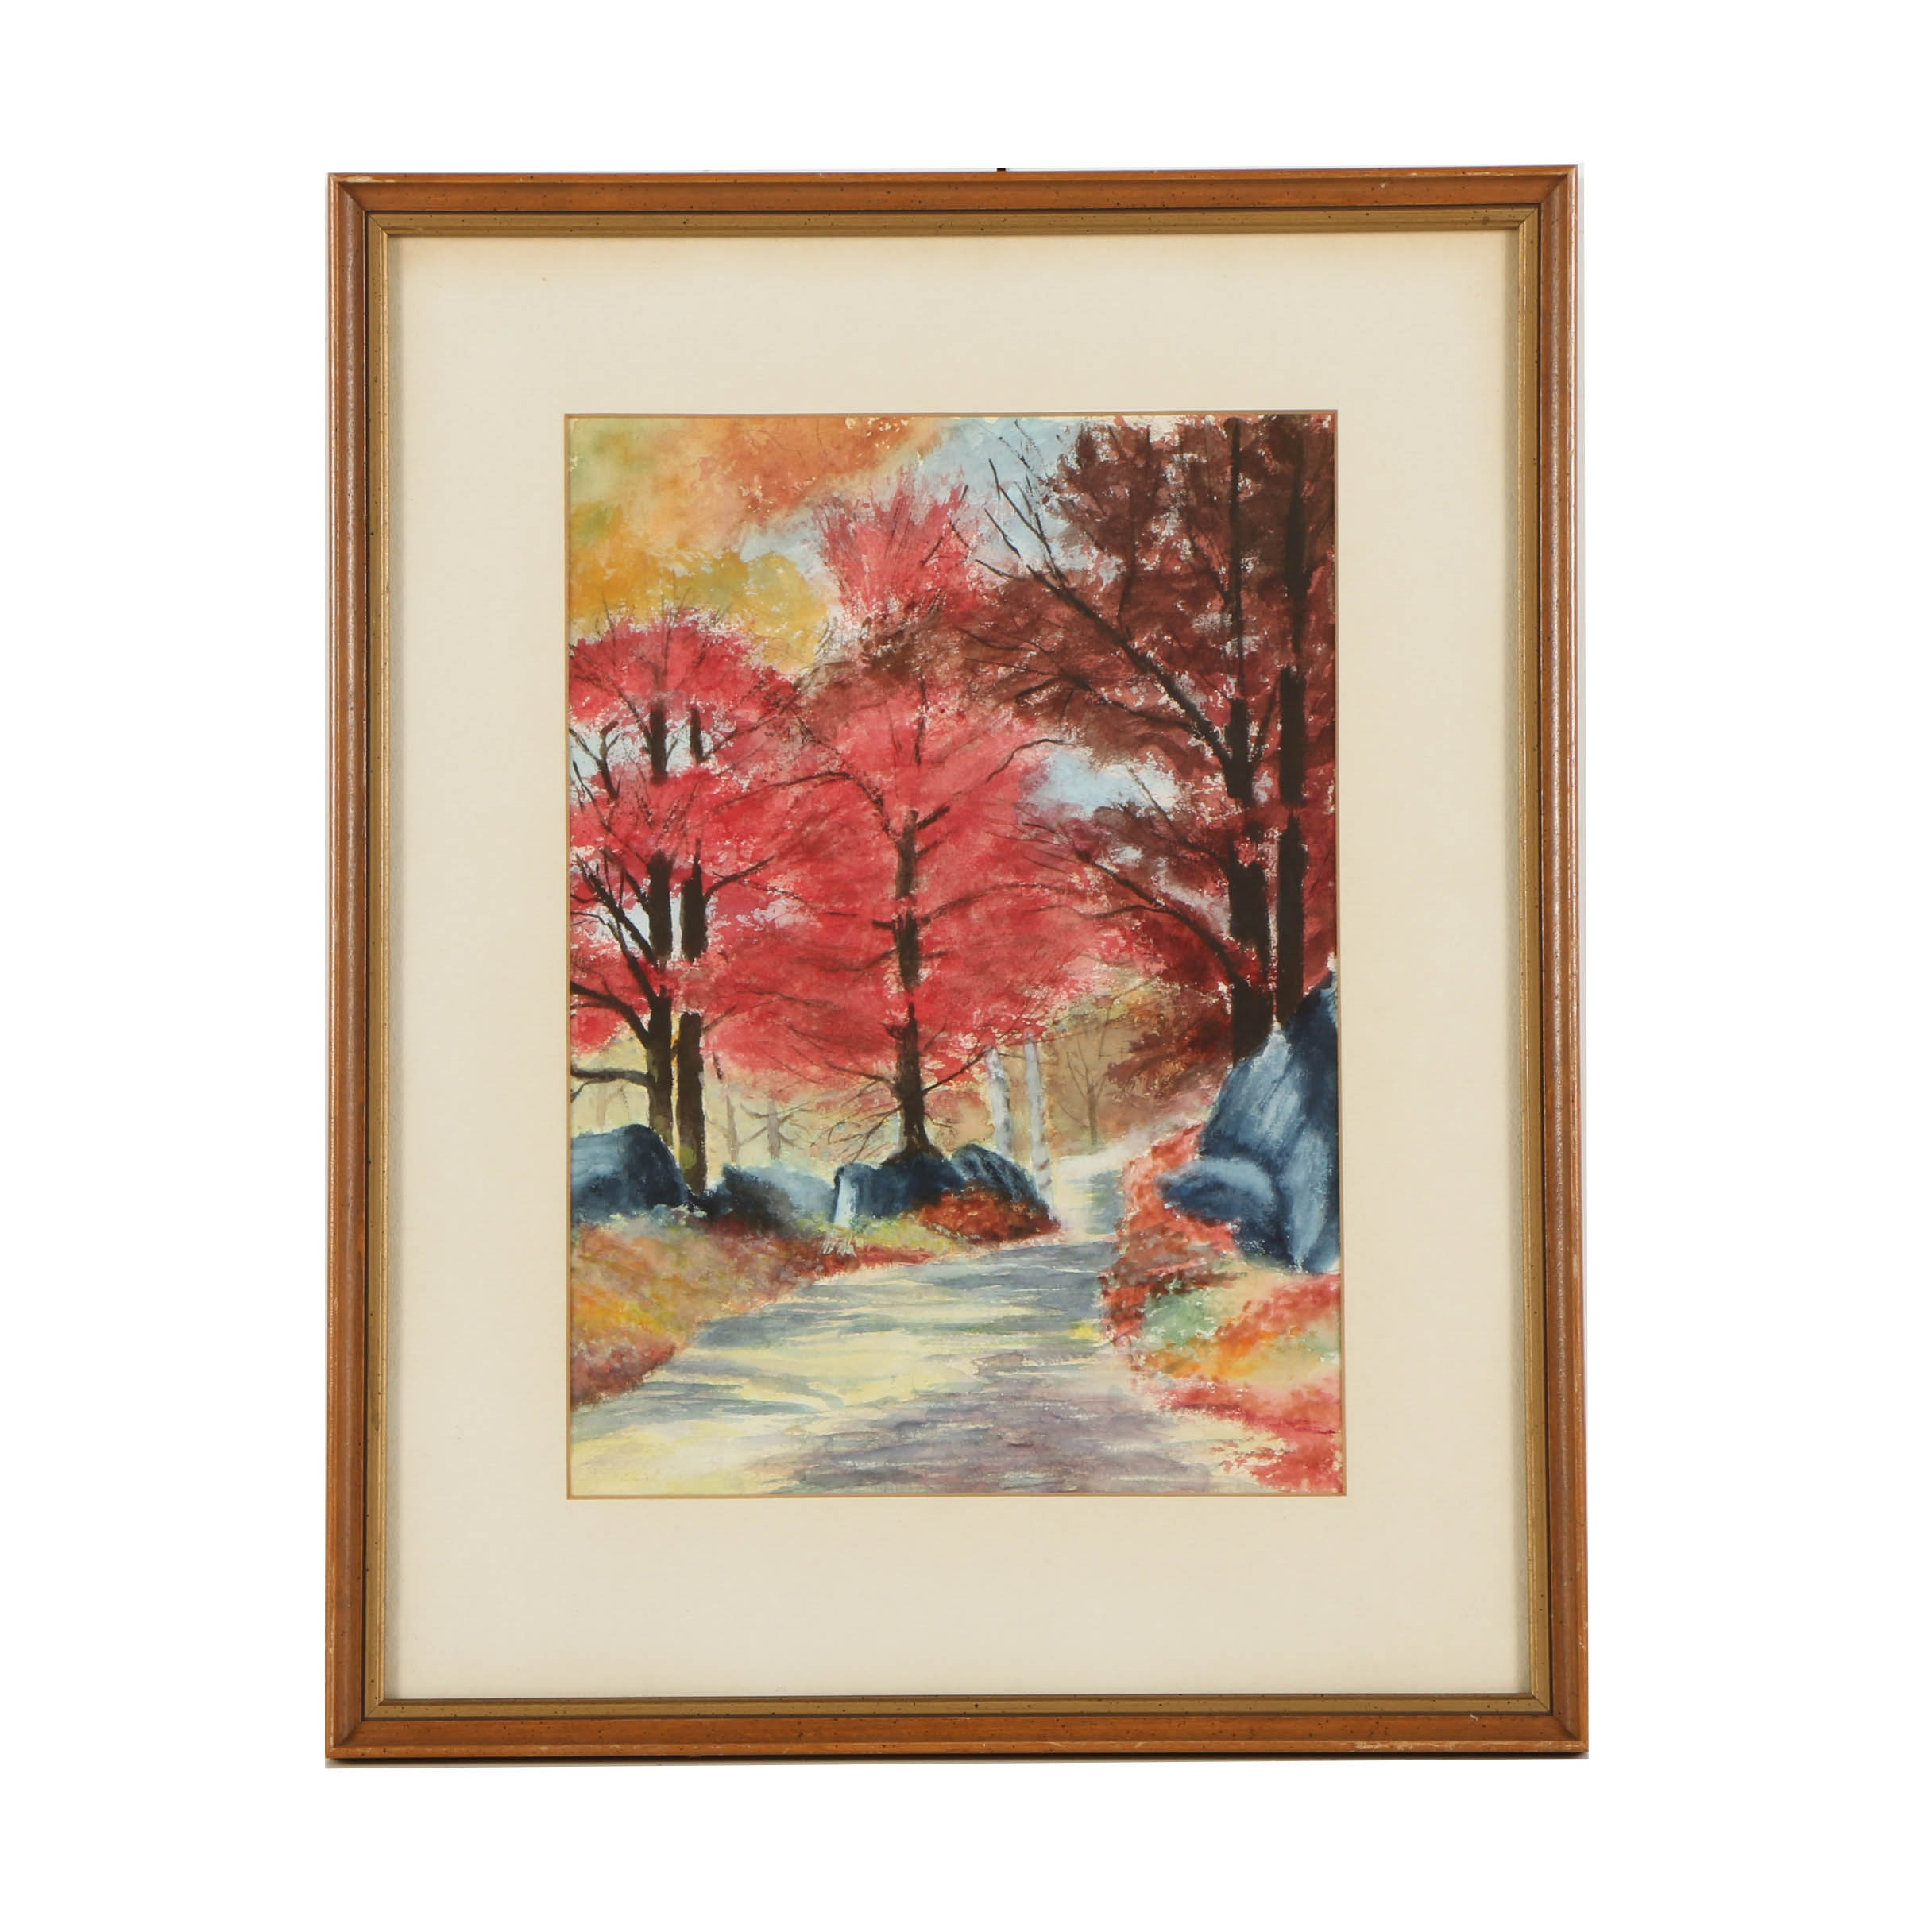 Circa 1961 Watercolor Painting on Paper of Colorful Autumn Landscape